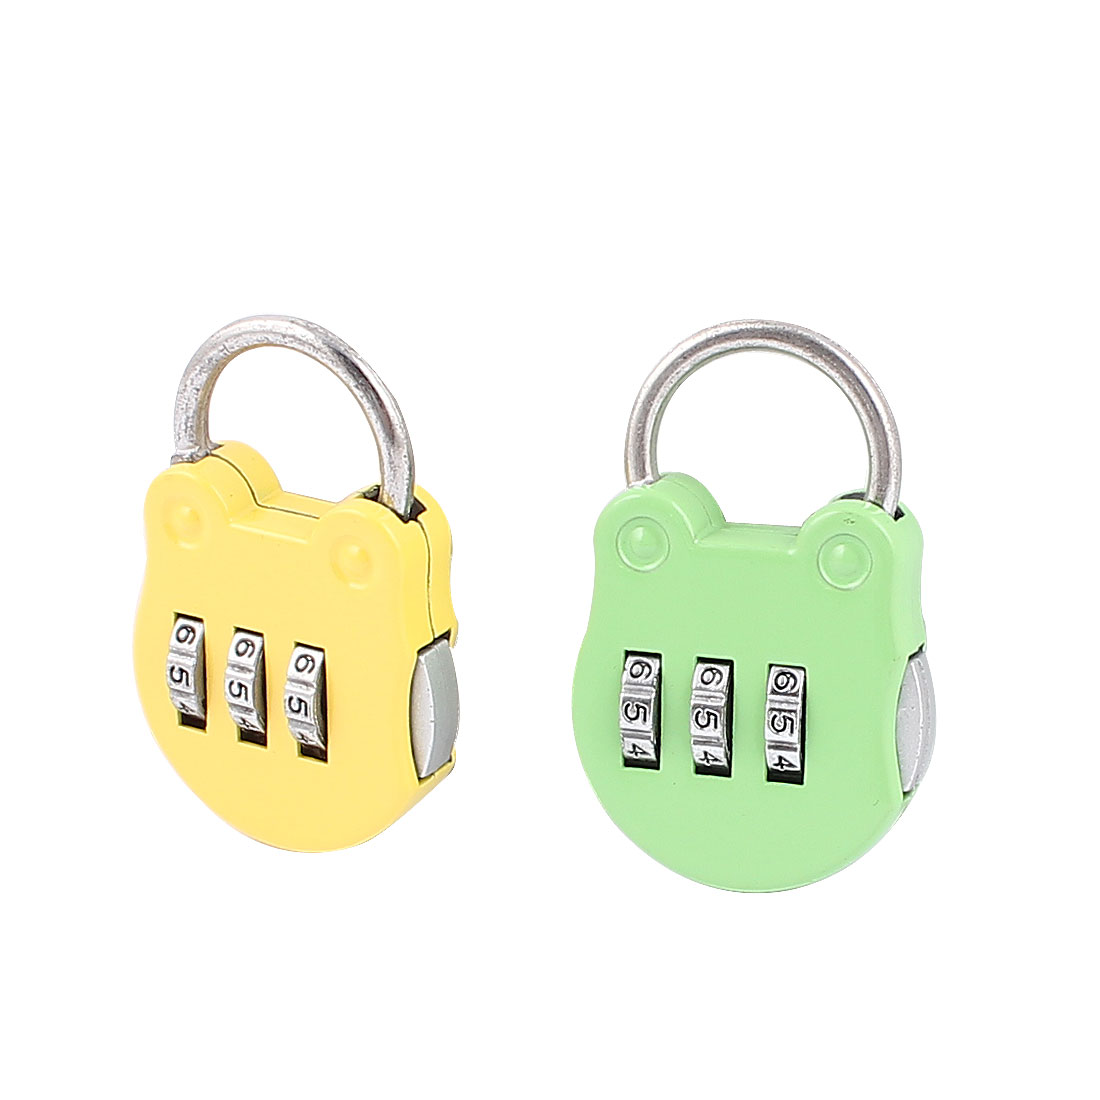 Handbag Shape 0-9 Number Combination Lock Padlock Yellow Green 2Pcs